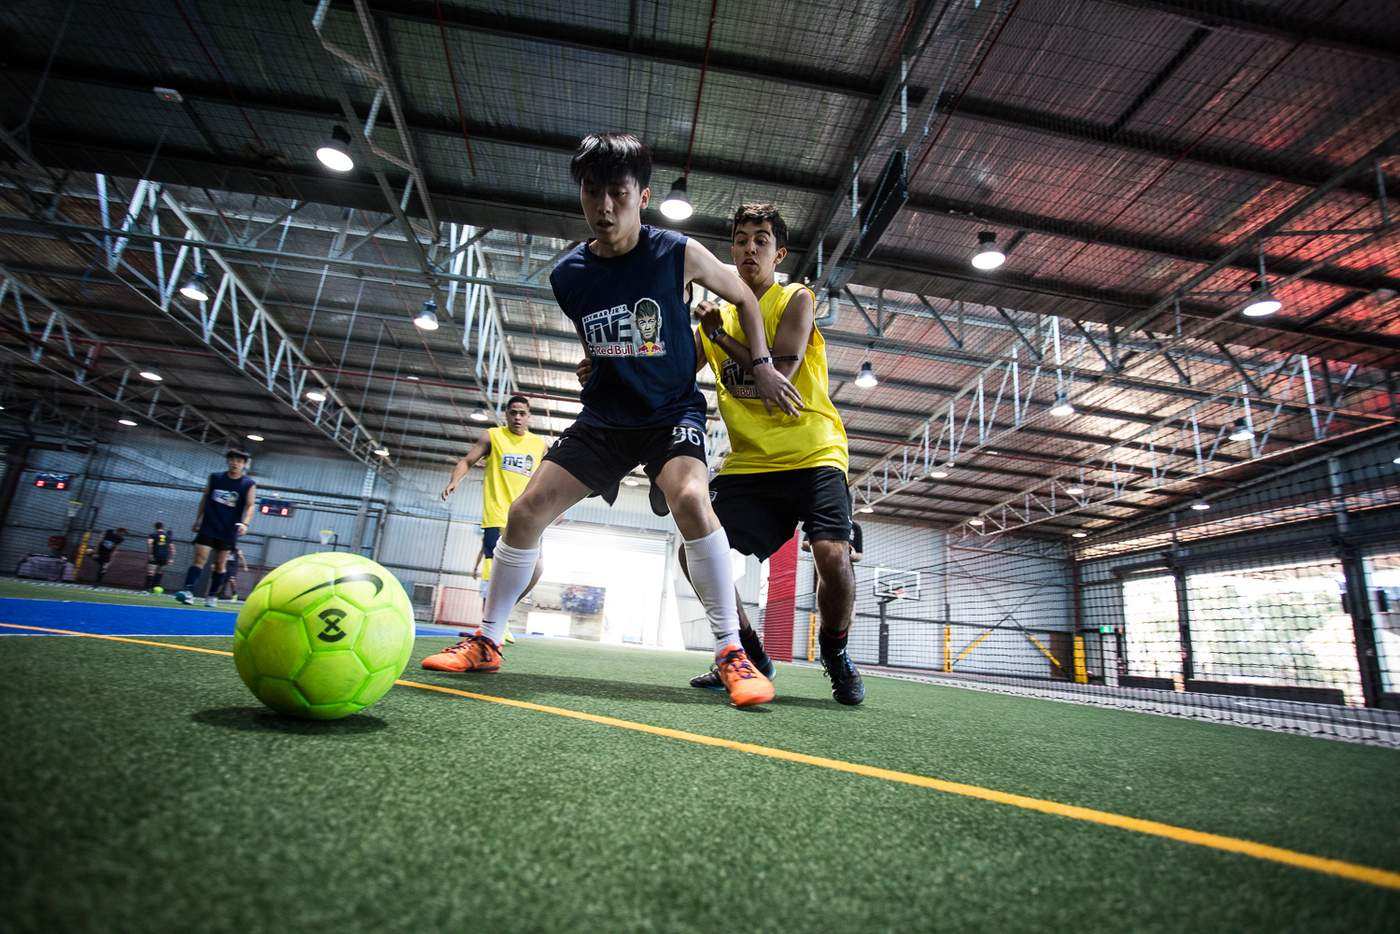 The Best Indoor Soccer Shoes For Kids & Adults